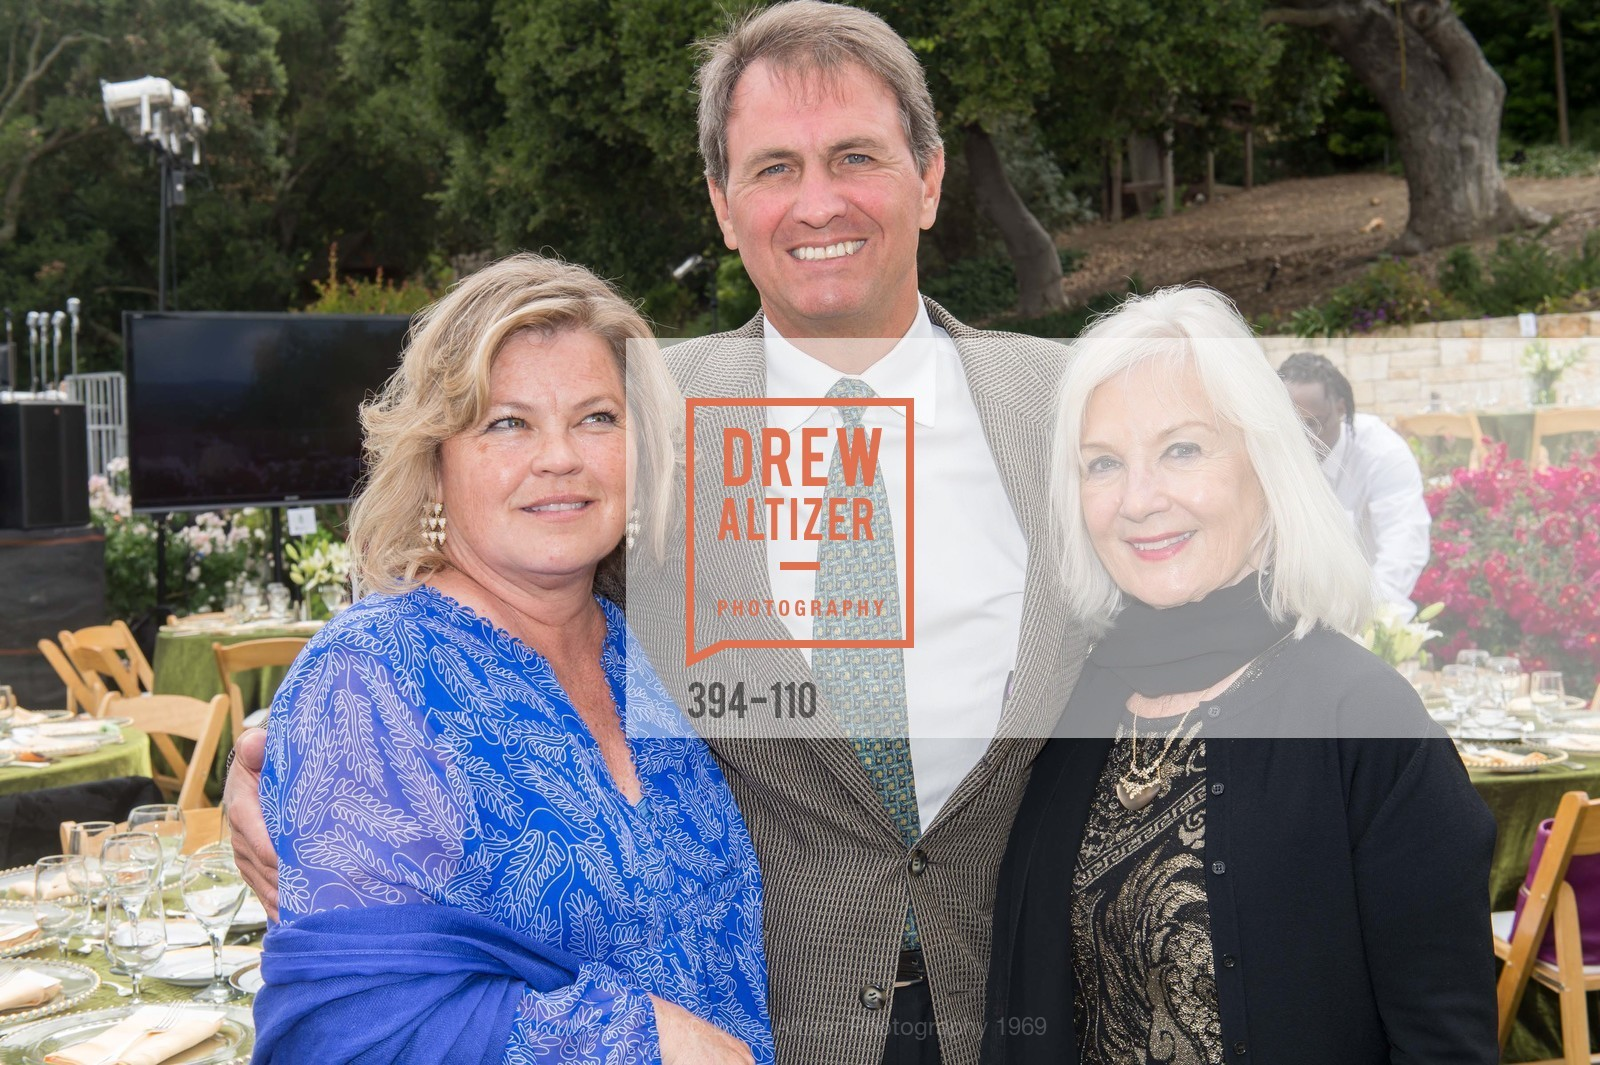 Linda Giampa, Laird Cagan, Arlene Inch, LYME AID 2015 Benefiting the Bay Area Lyme Foundation, Private Residence, May 16th, 2015,Drew Altizer, Drew Altizer Photography, full-service event agency, private events, San Francisco photographer, photographer California